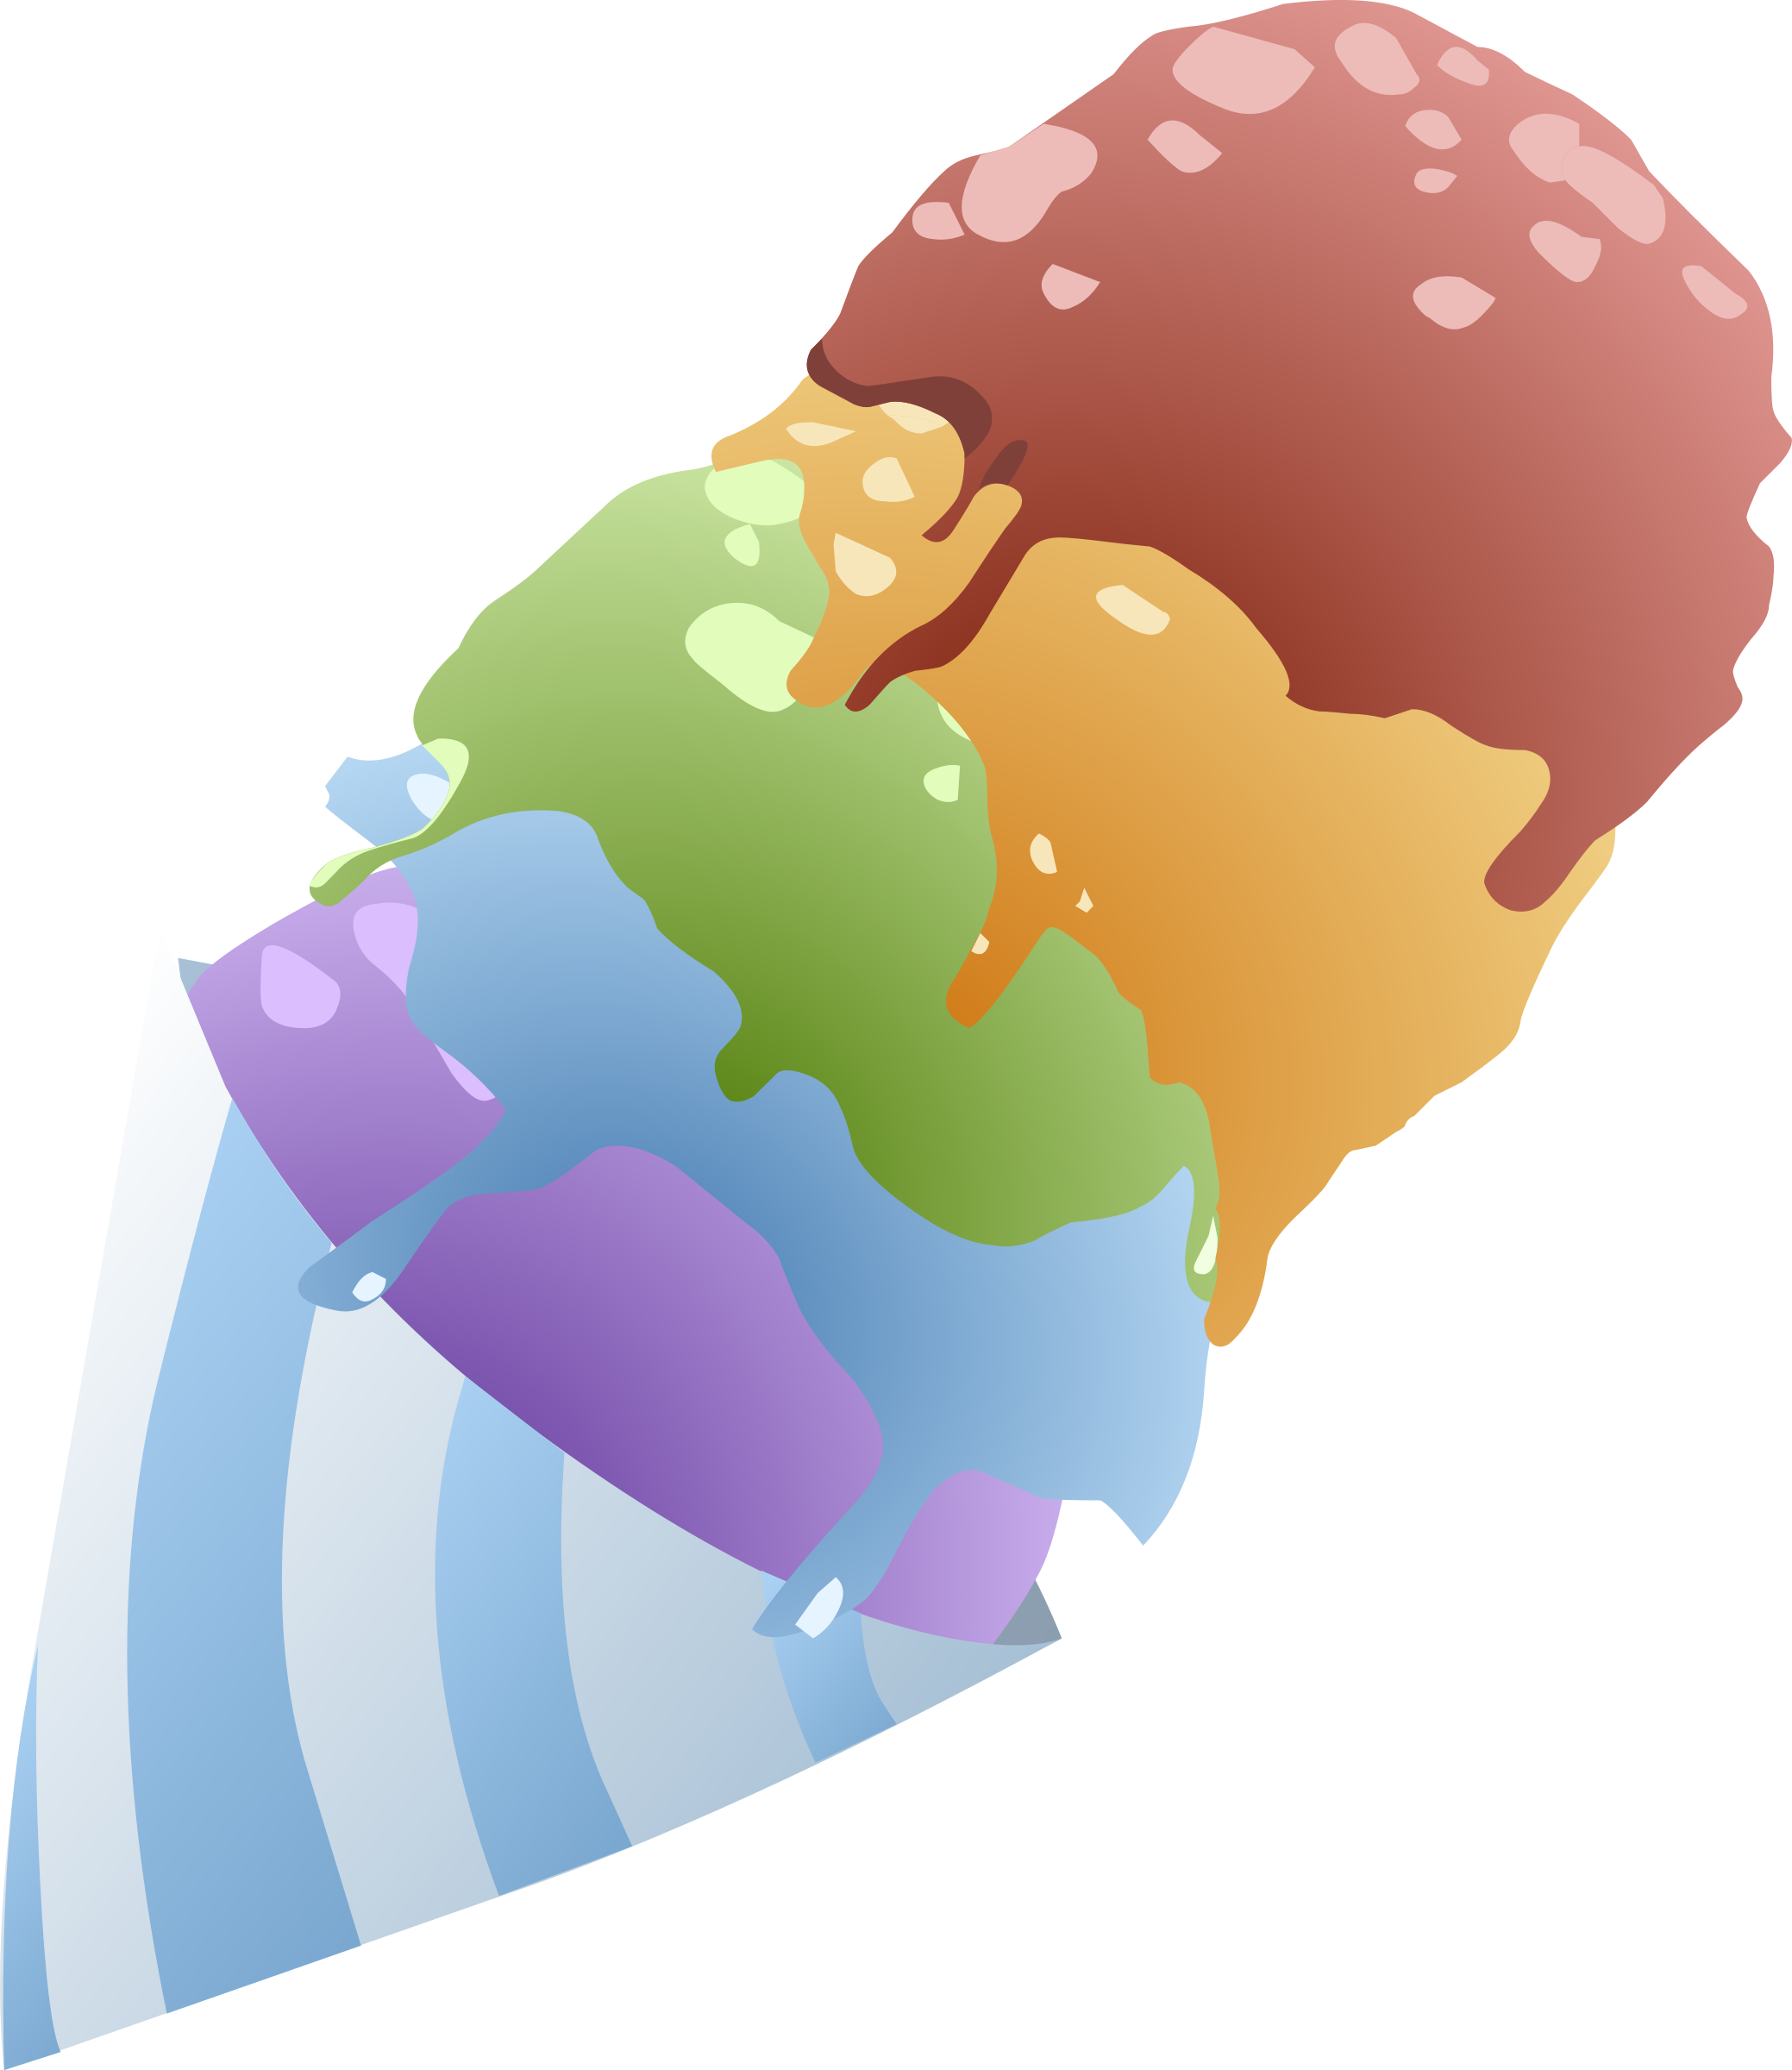 Food Sno Cone Rainbow by glitch